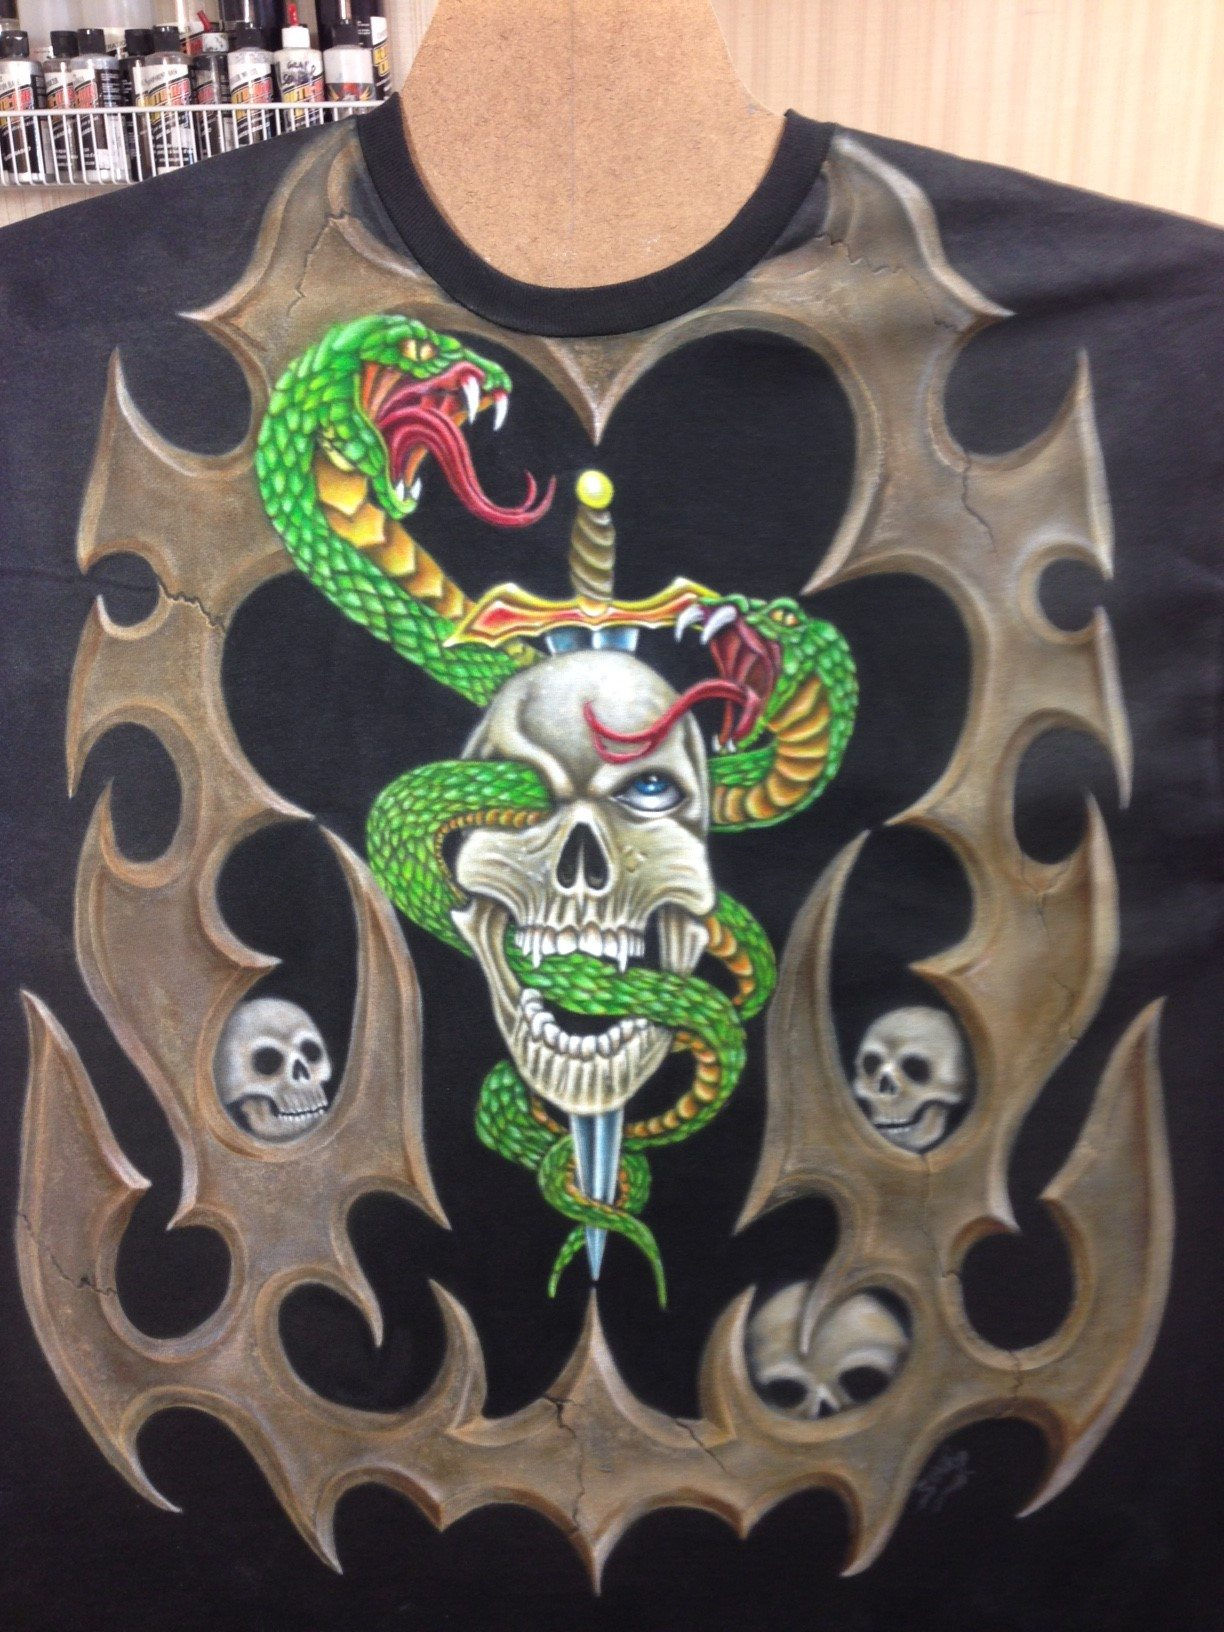 Apparel Airbrushing Long Island Airbrush Artist